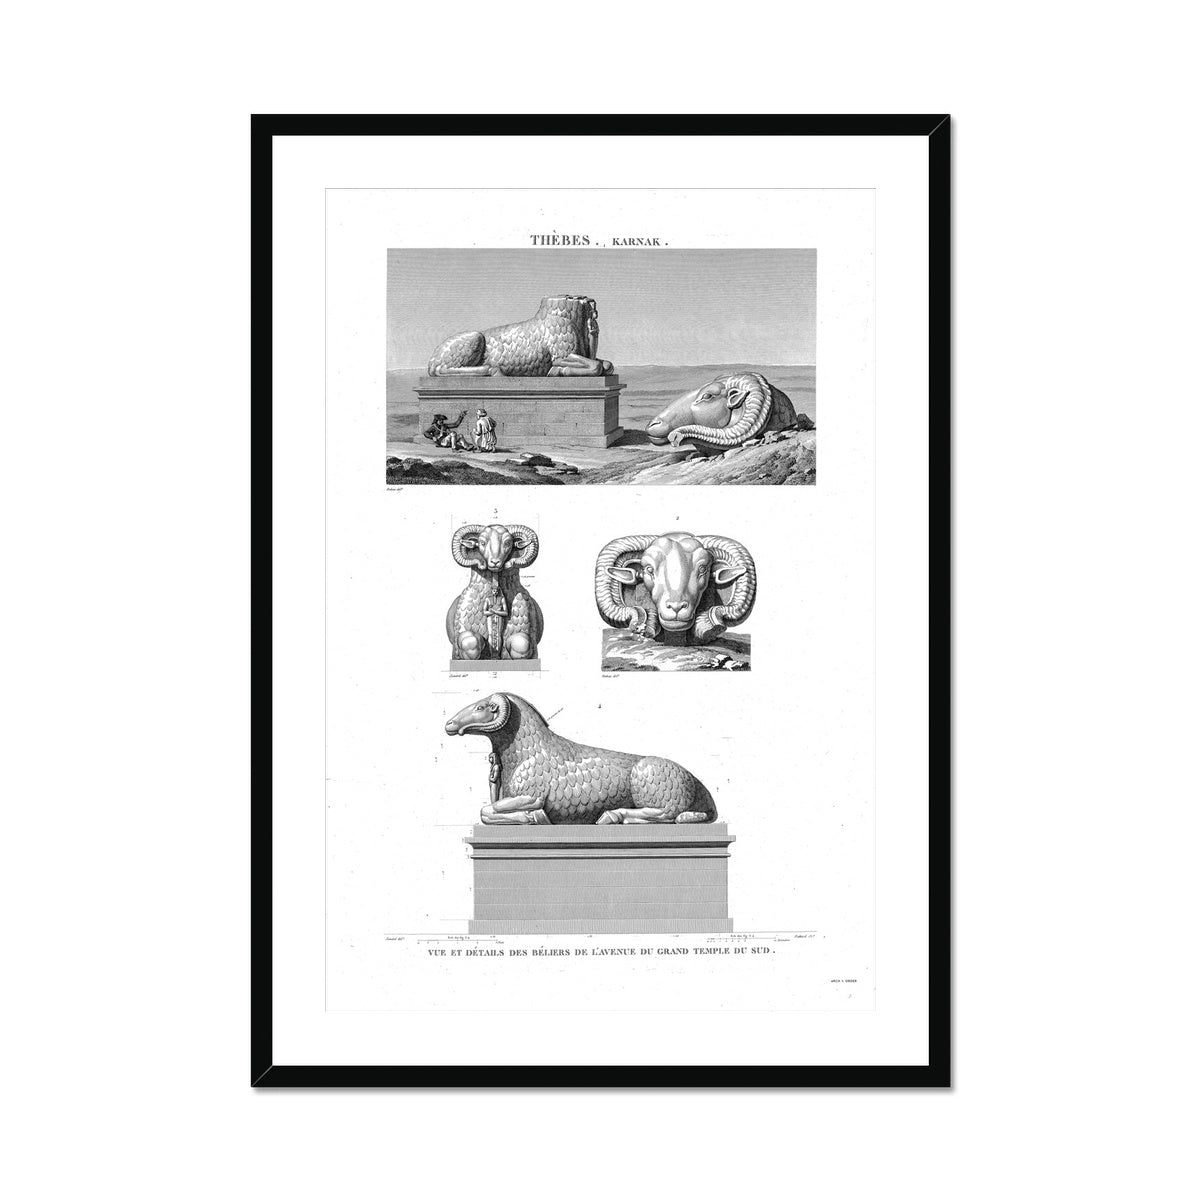 Rams Detail - Karnak - Thebes Egypt -  Framed & Mounted Print